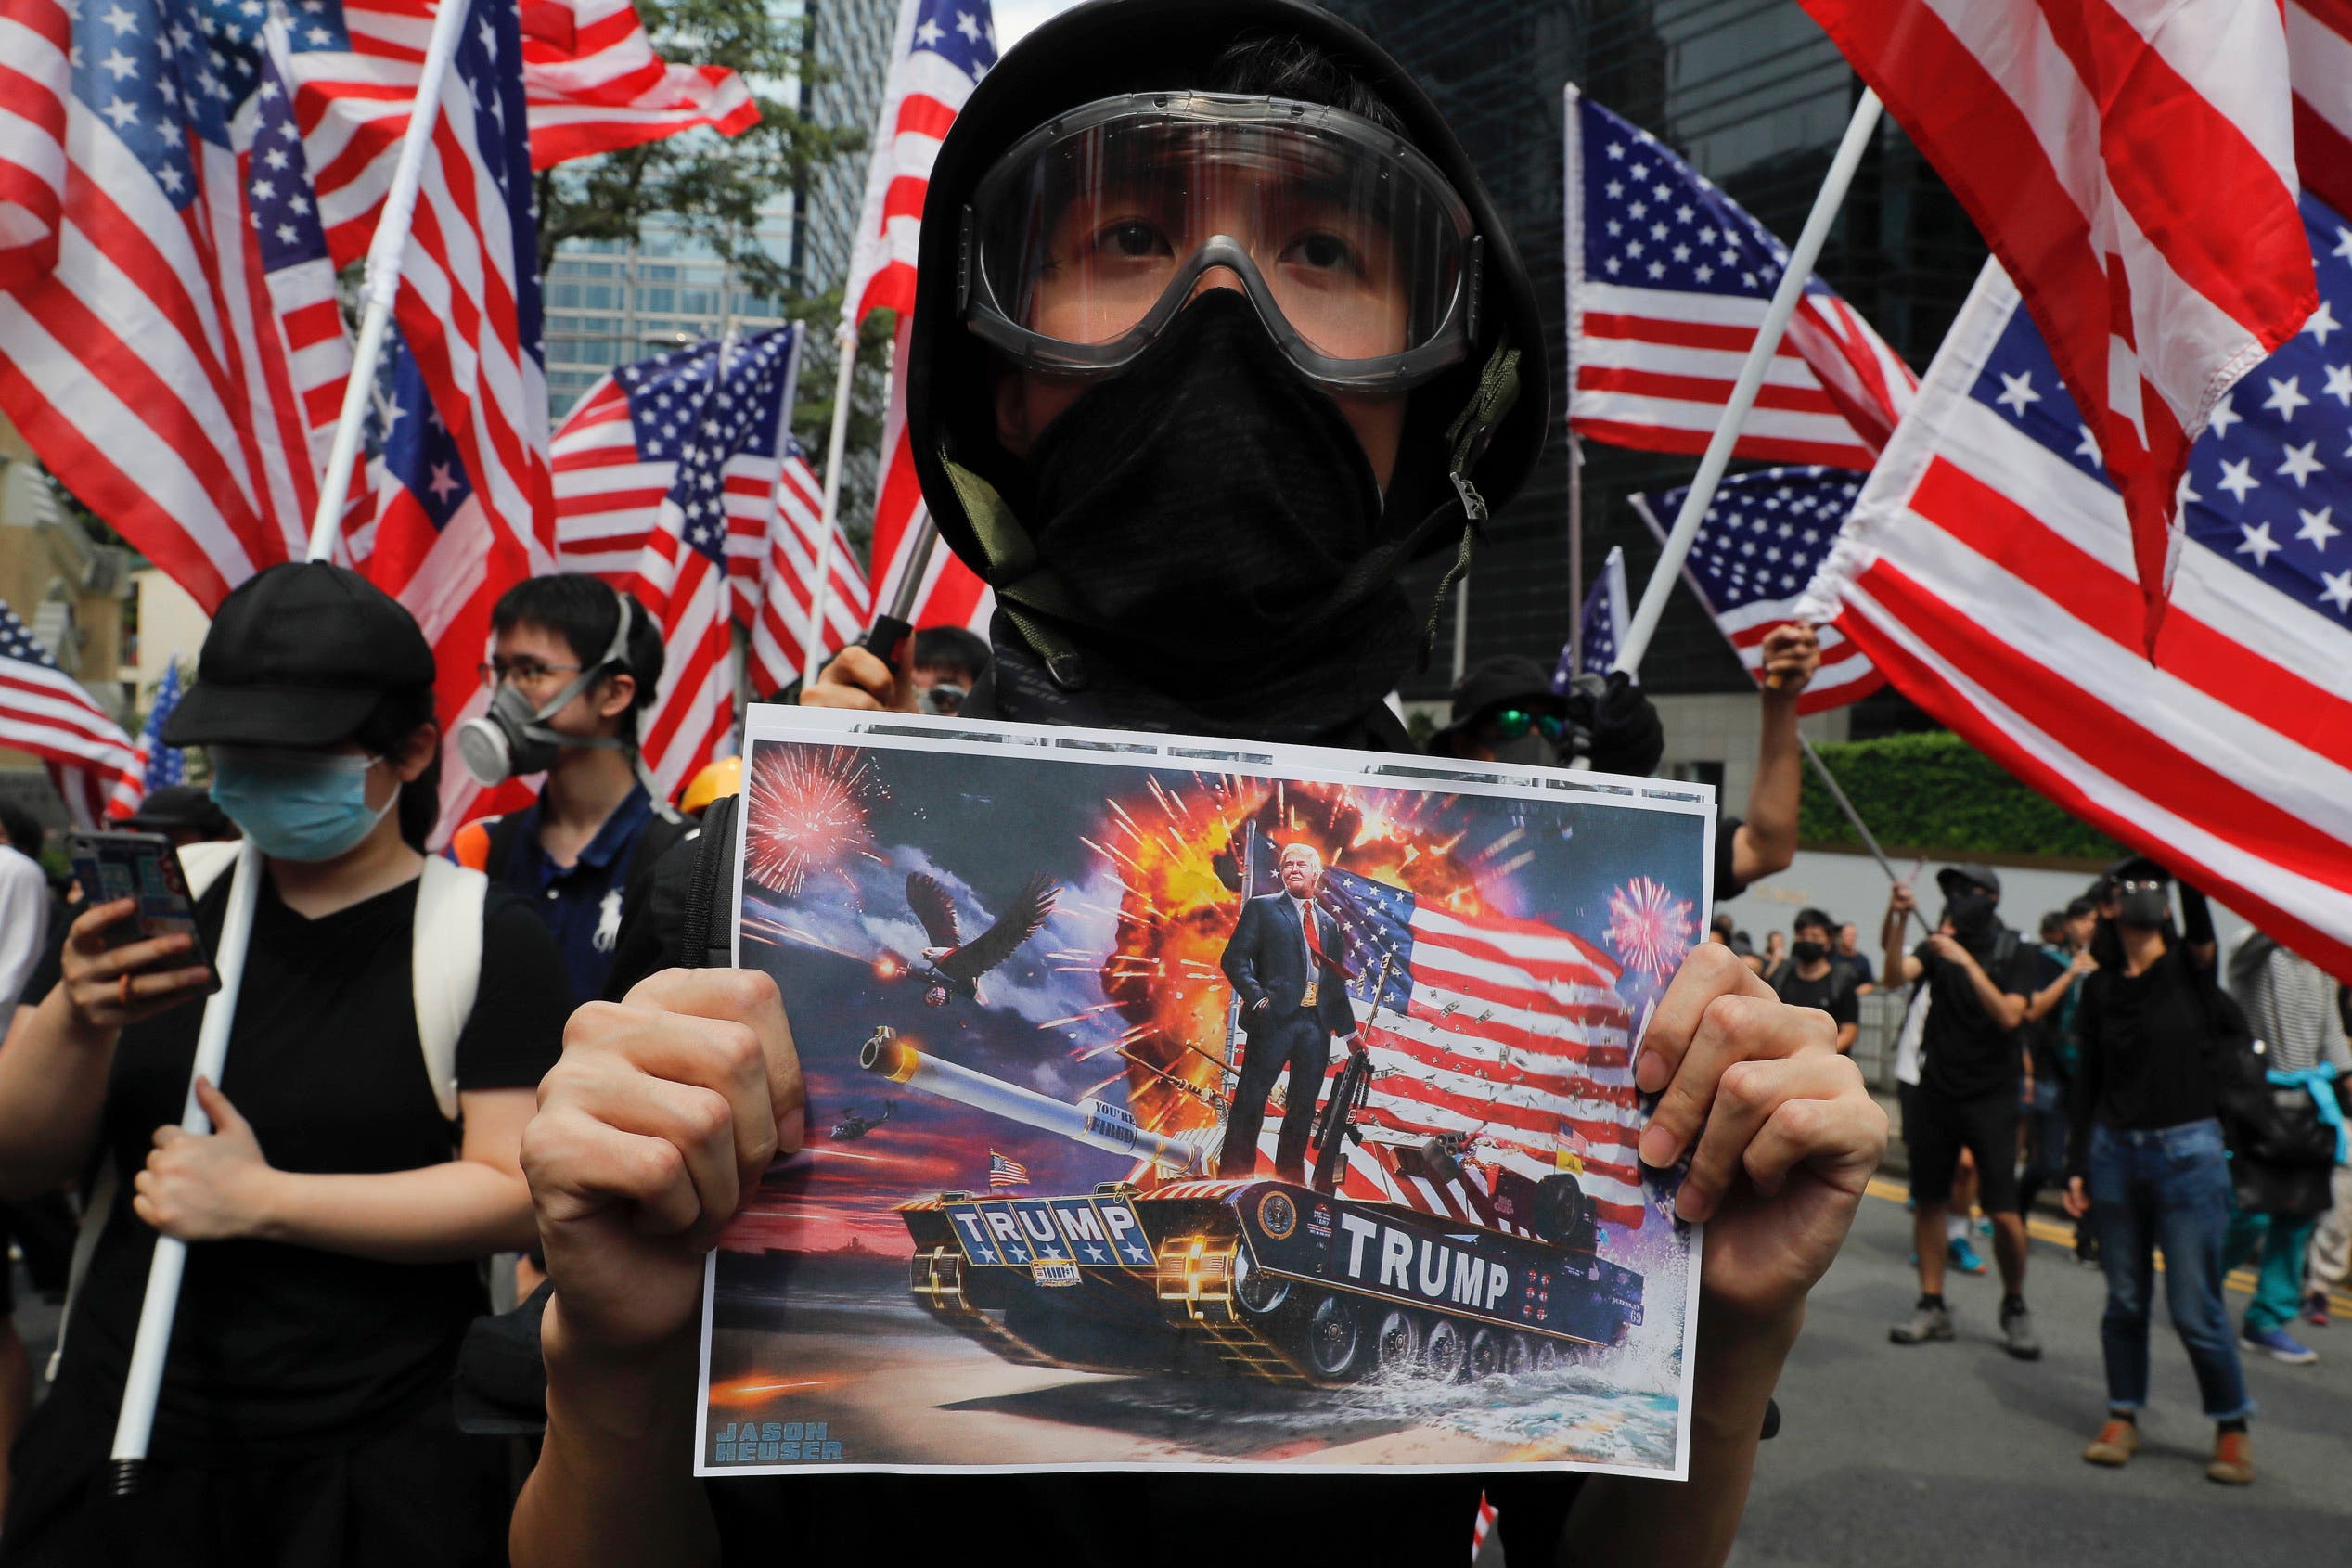 A protester shows a poster of U.S. President Donald Trump as they march with United States flags during a protest in Hong Kong, Sunday, Sept. 8, 2019. (AP)